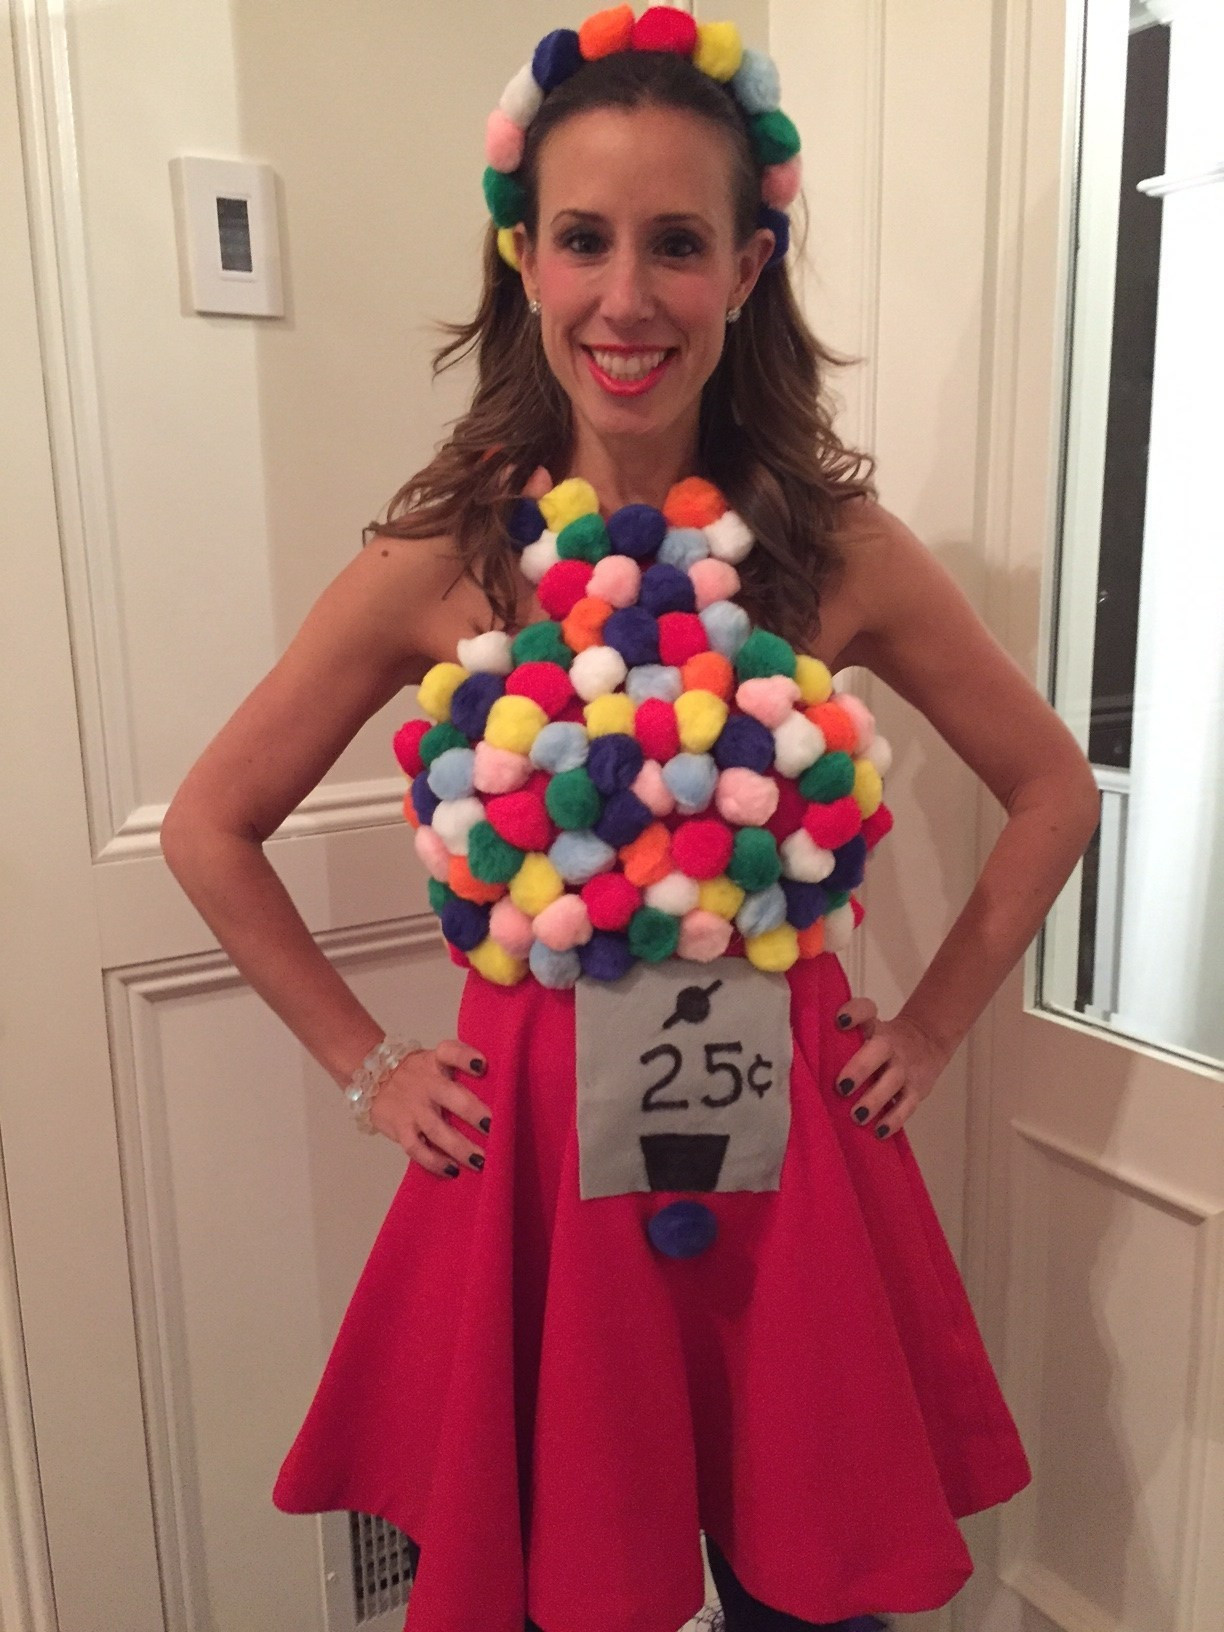 Best ideas about DIY Gumball Costume . Save or Pin DIY GUMBALL MACHINE HALLOWEEN COSTUME Now.